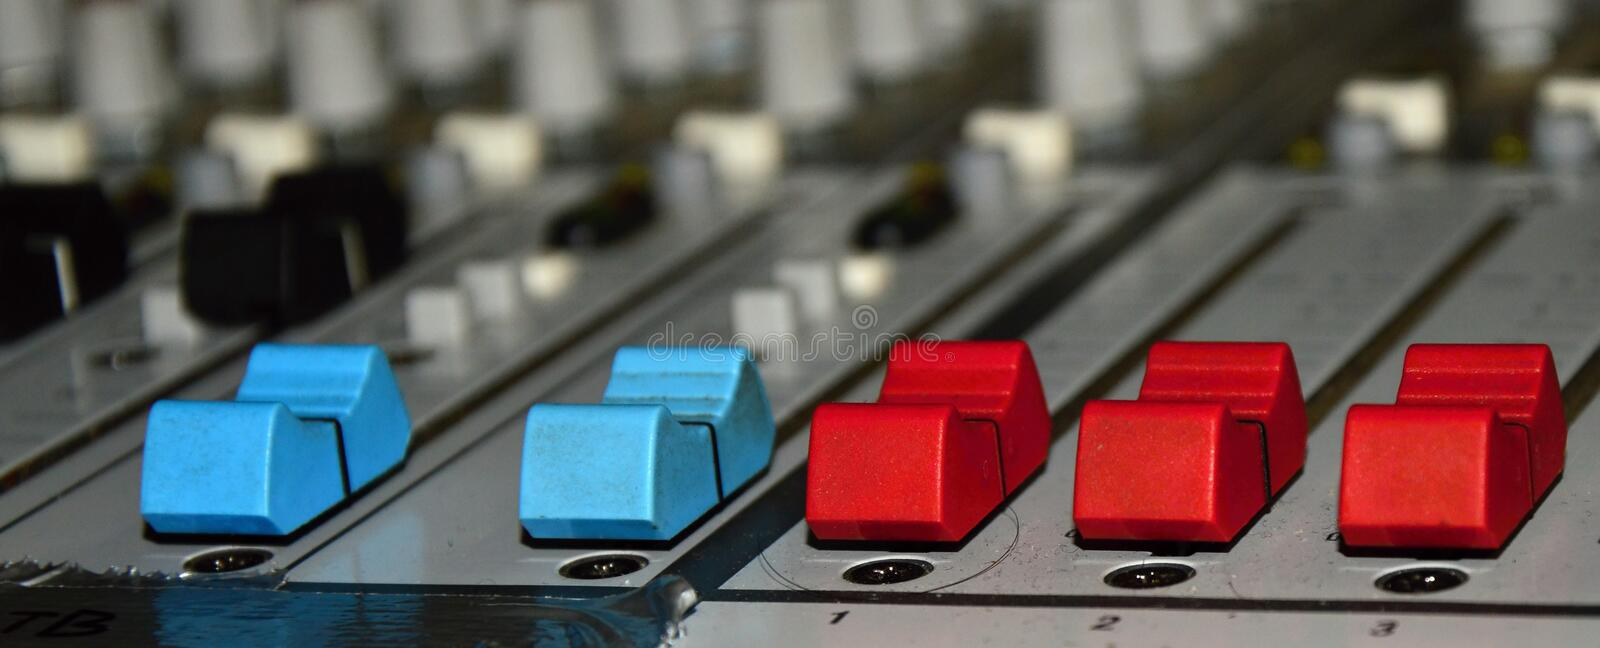 Dj mix royalty free stock photography